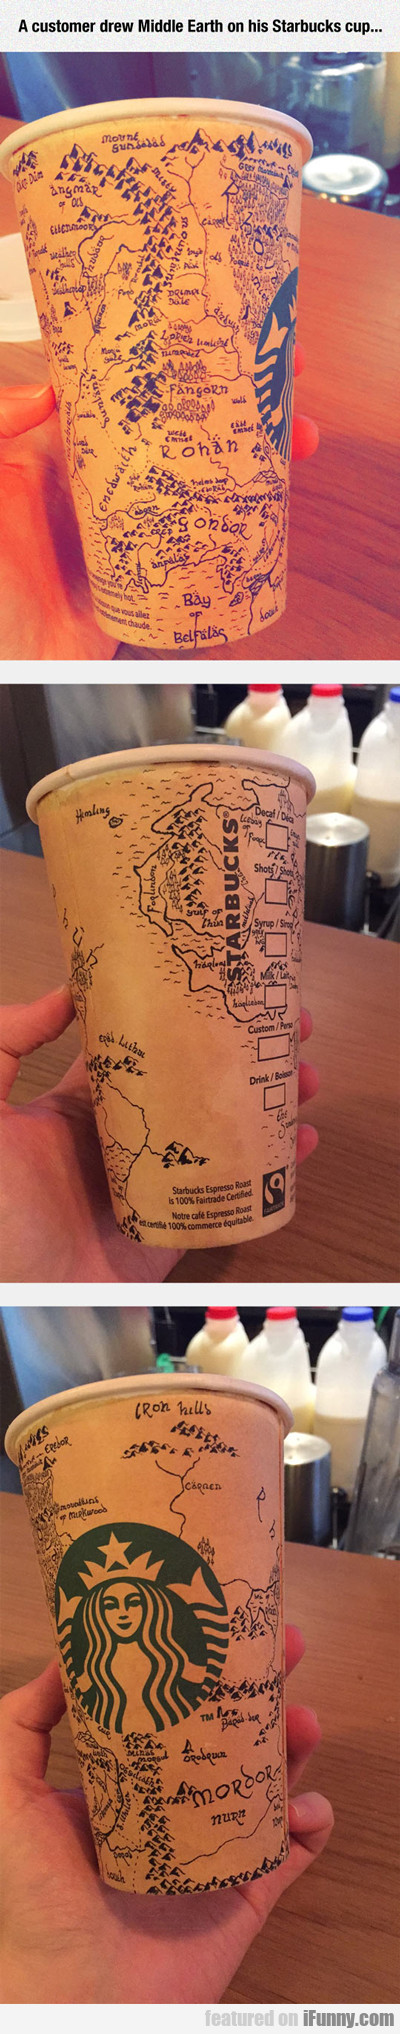 A Customer Drew Middle Earth On His Coffee Cup...